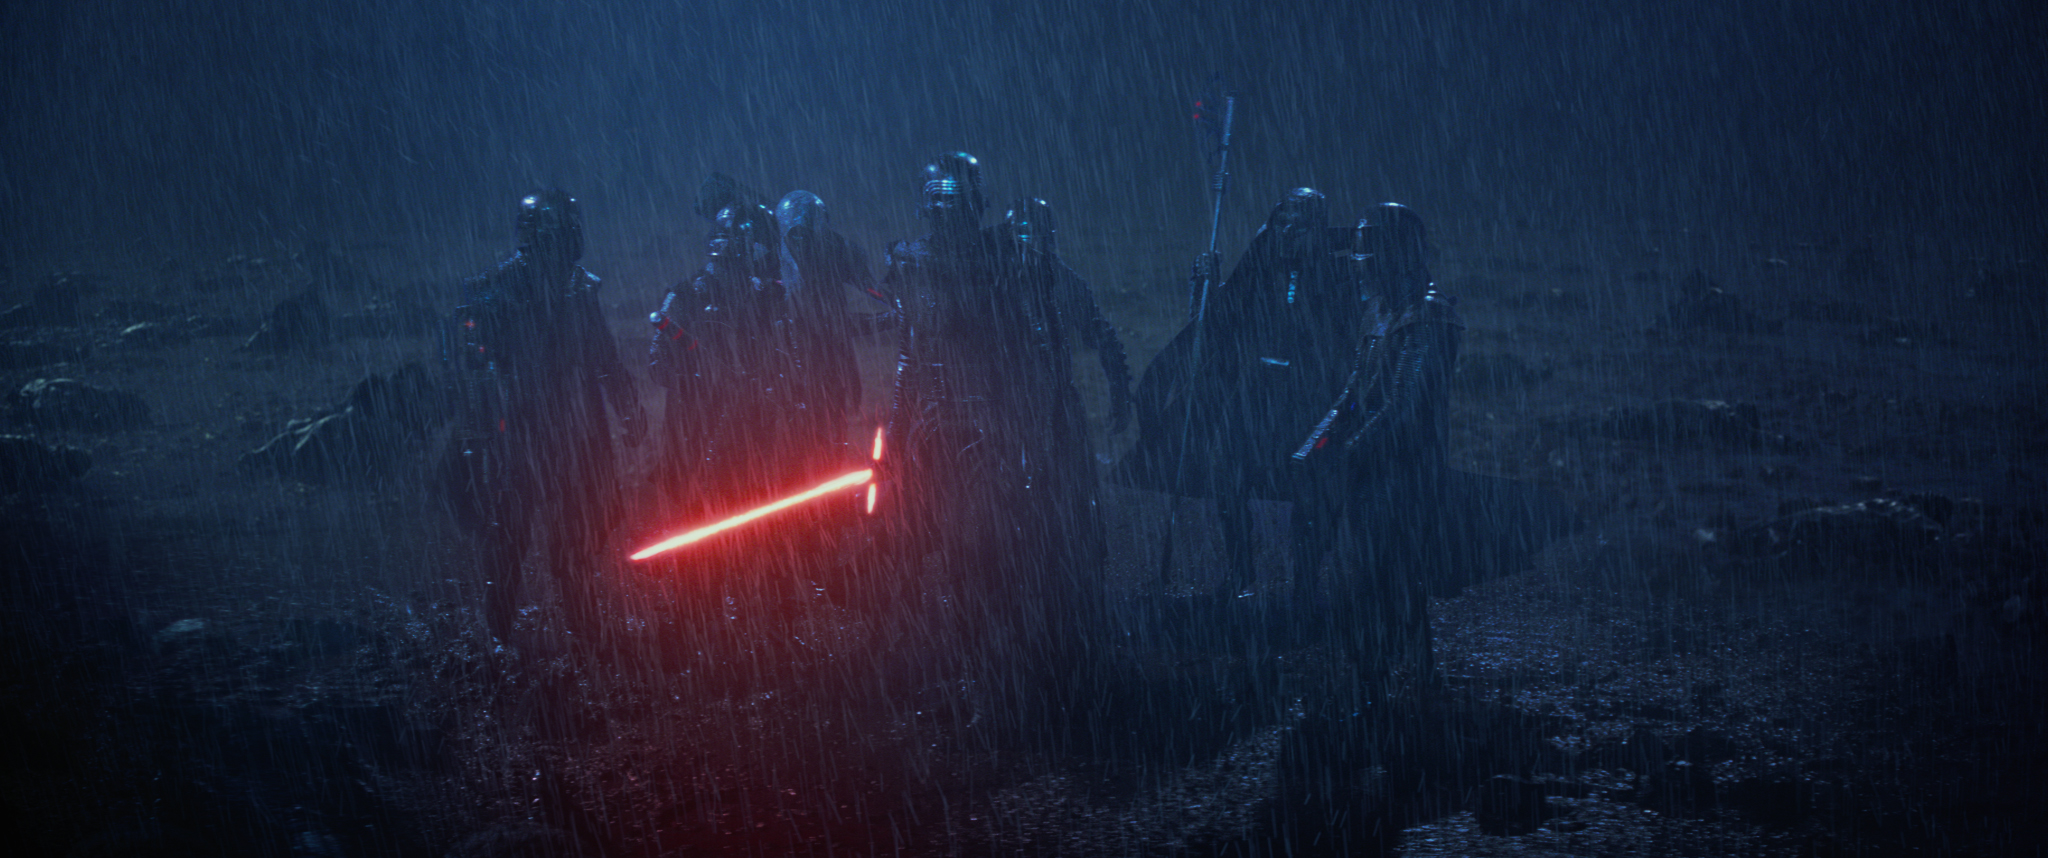 Star Wars: The Force Awakens..Kylo Ren (Adam Driver) ..Ph: Film Frame..? 2014 Lucasfilm Ltd. & TM. All Right Reserved..